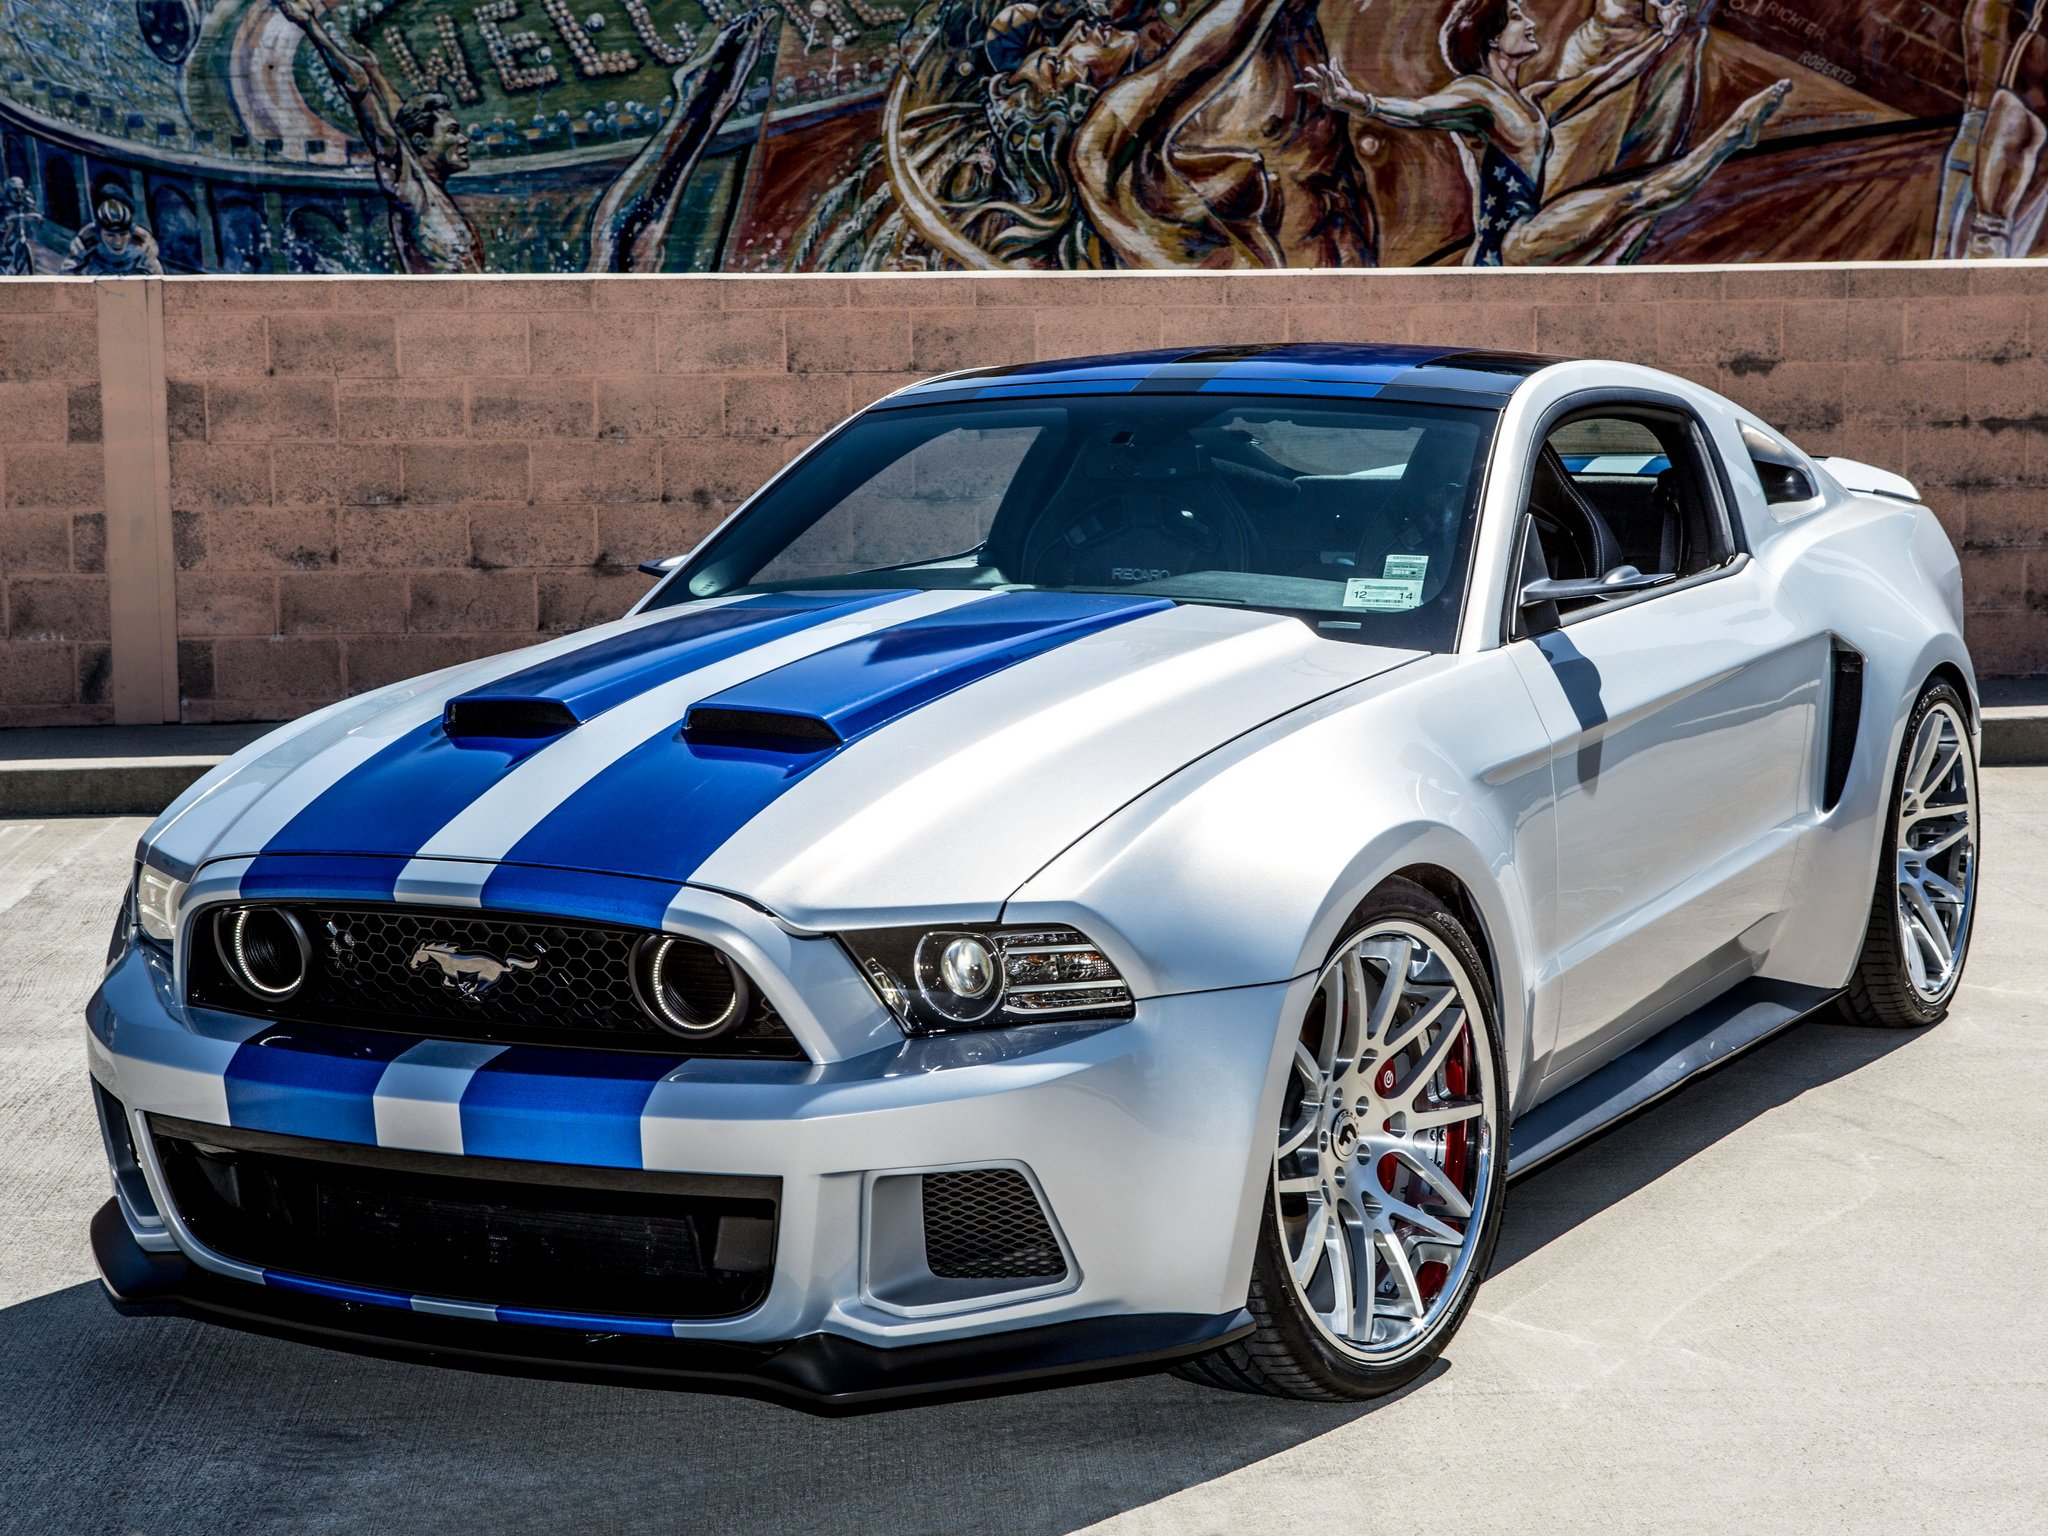 2014 ford mustang g t need for speed movoe film supercar. Black Bedroom Furniture Sets. Home Design Ideas